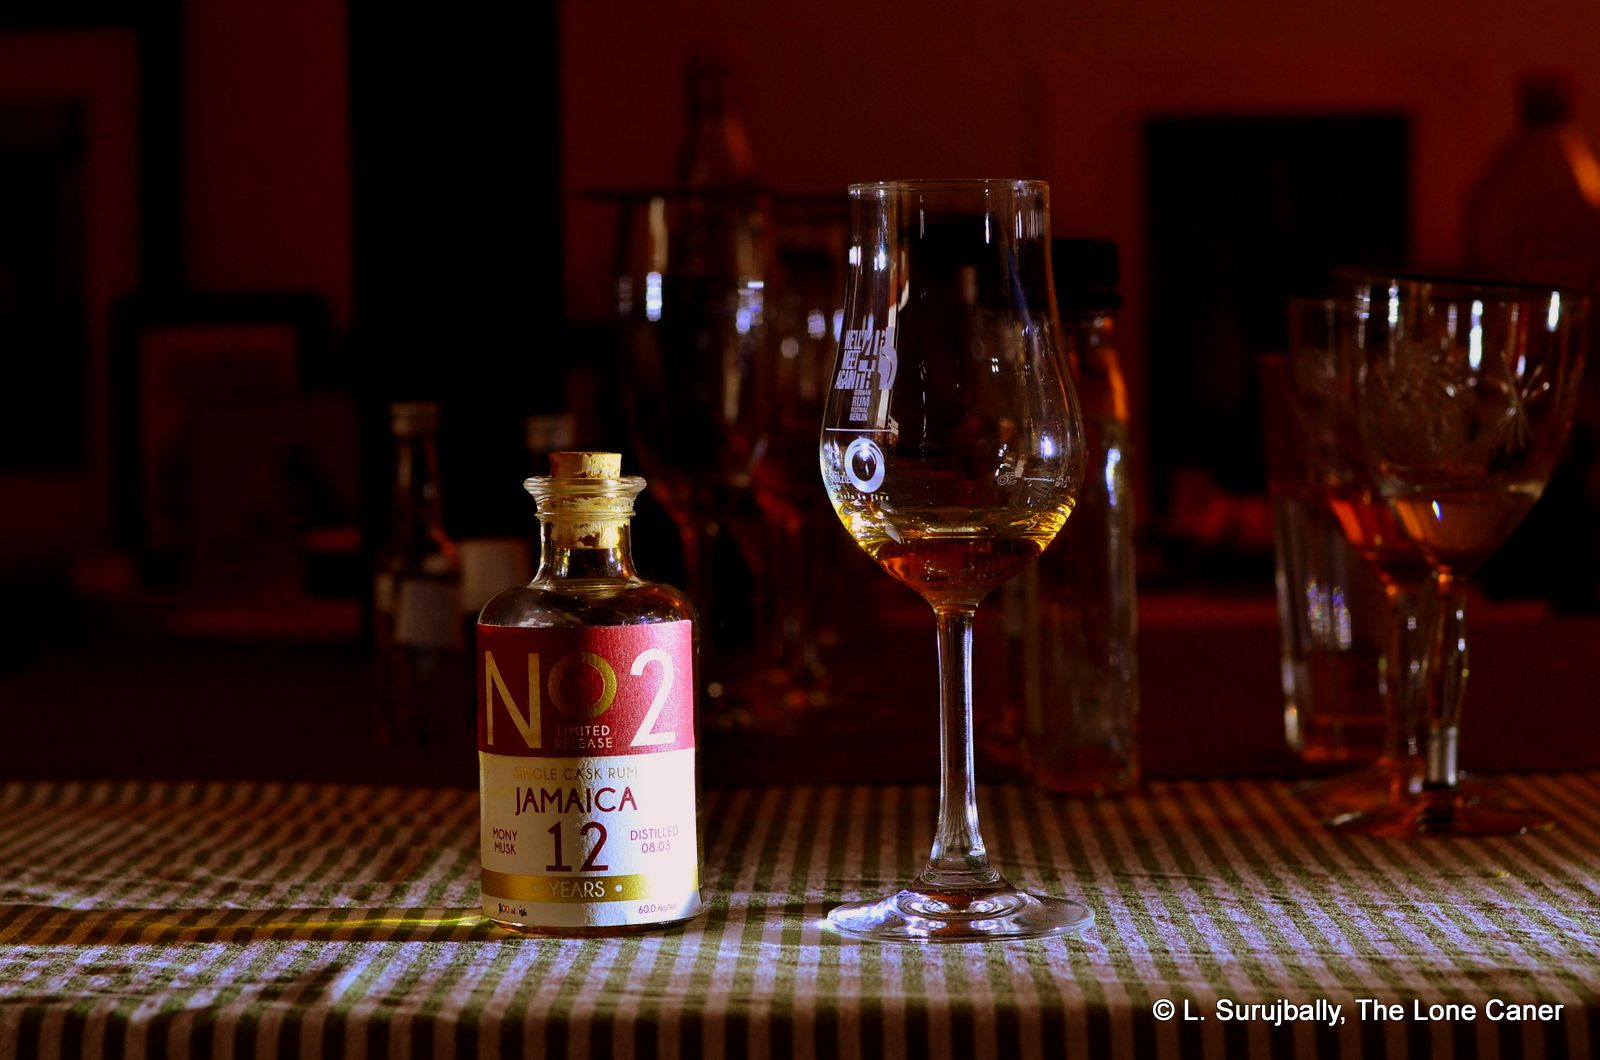 EKTE No. 2 12 Year Old Jamaican Rum Review